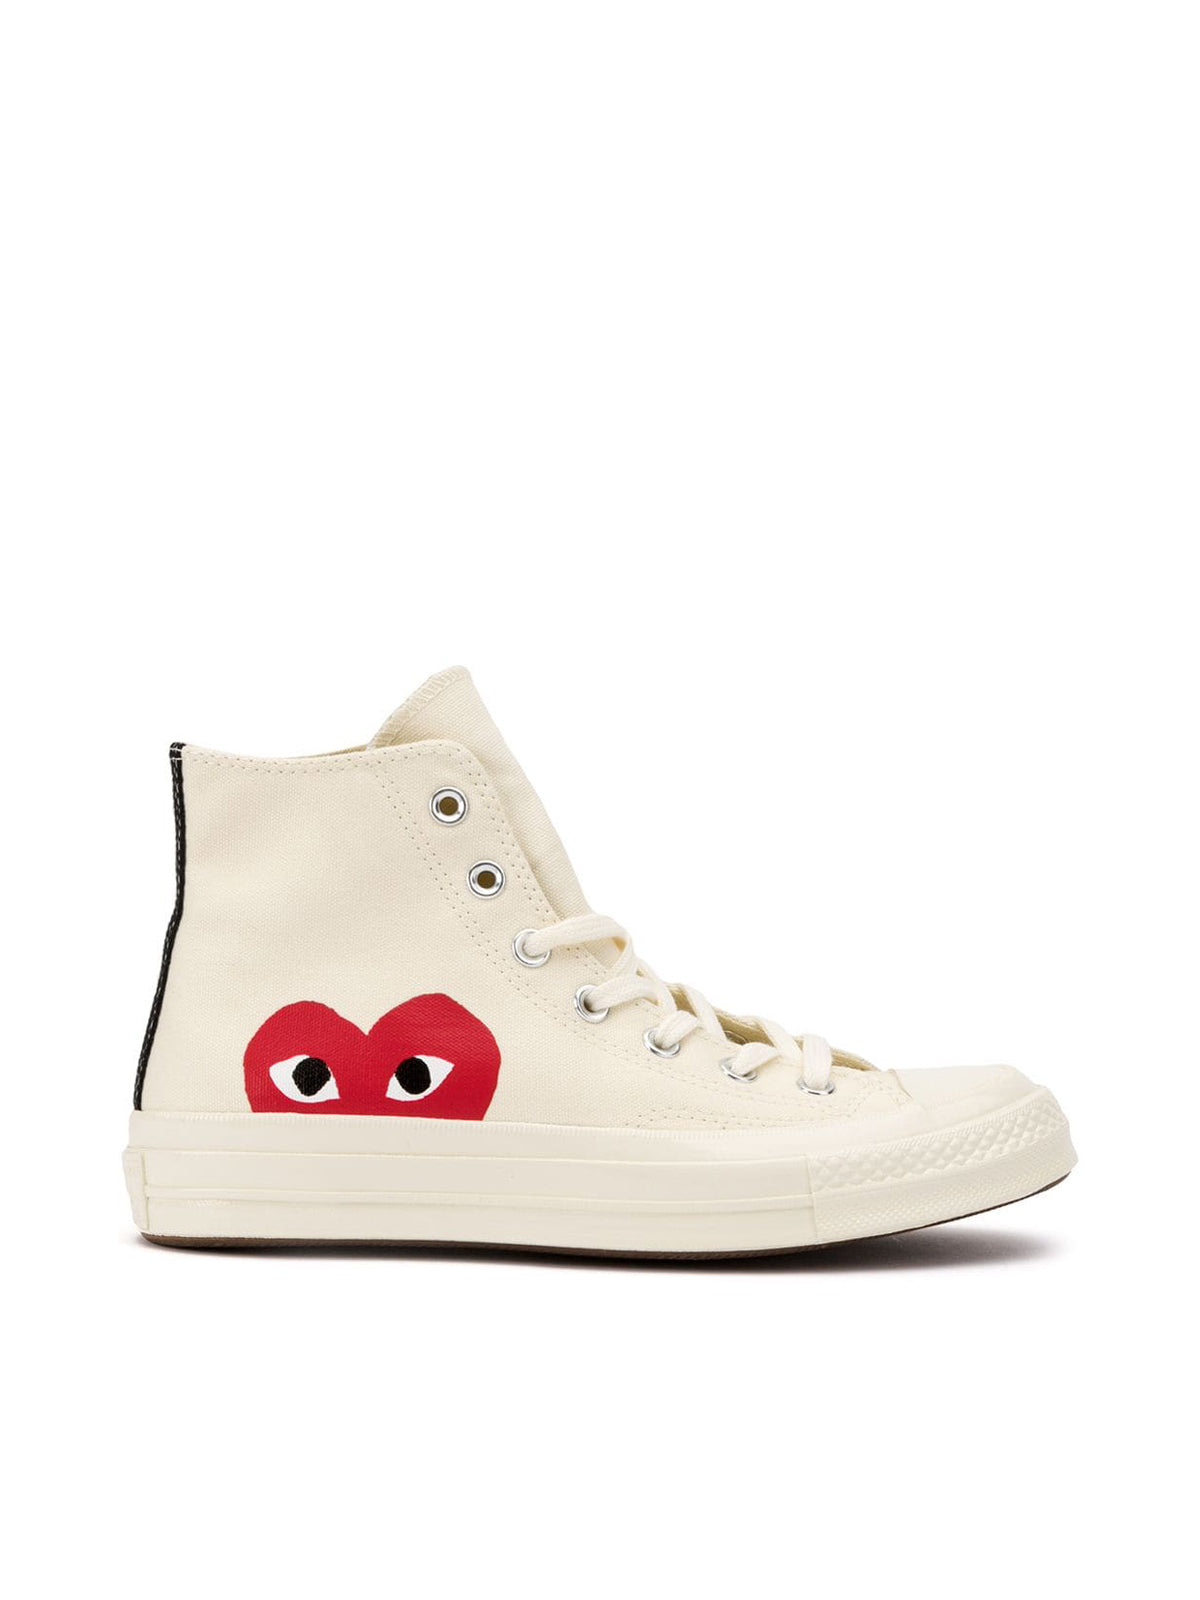 `CHUCK TAYLOR 70s ALL STAR` SNEAKERS